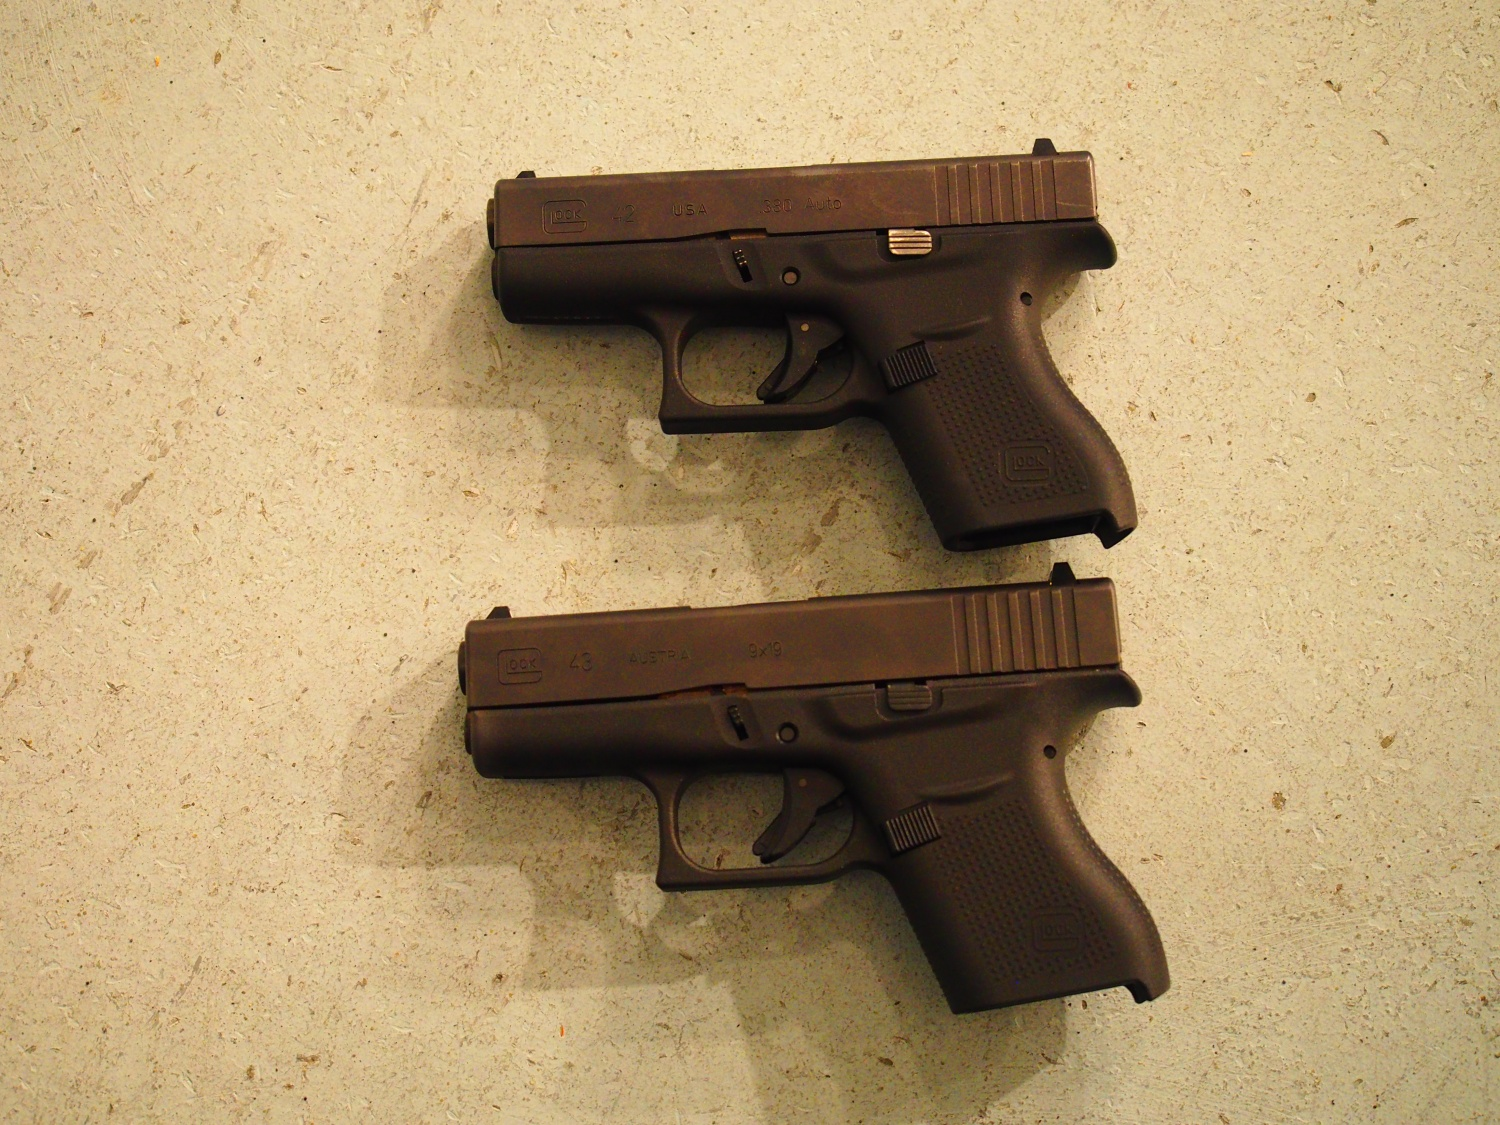 Comparison in size between the Glock 42 and 43.